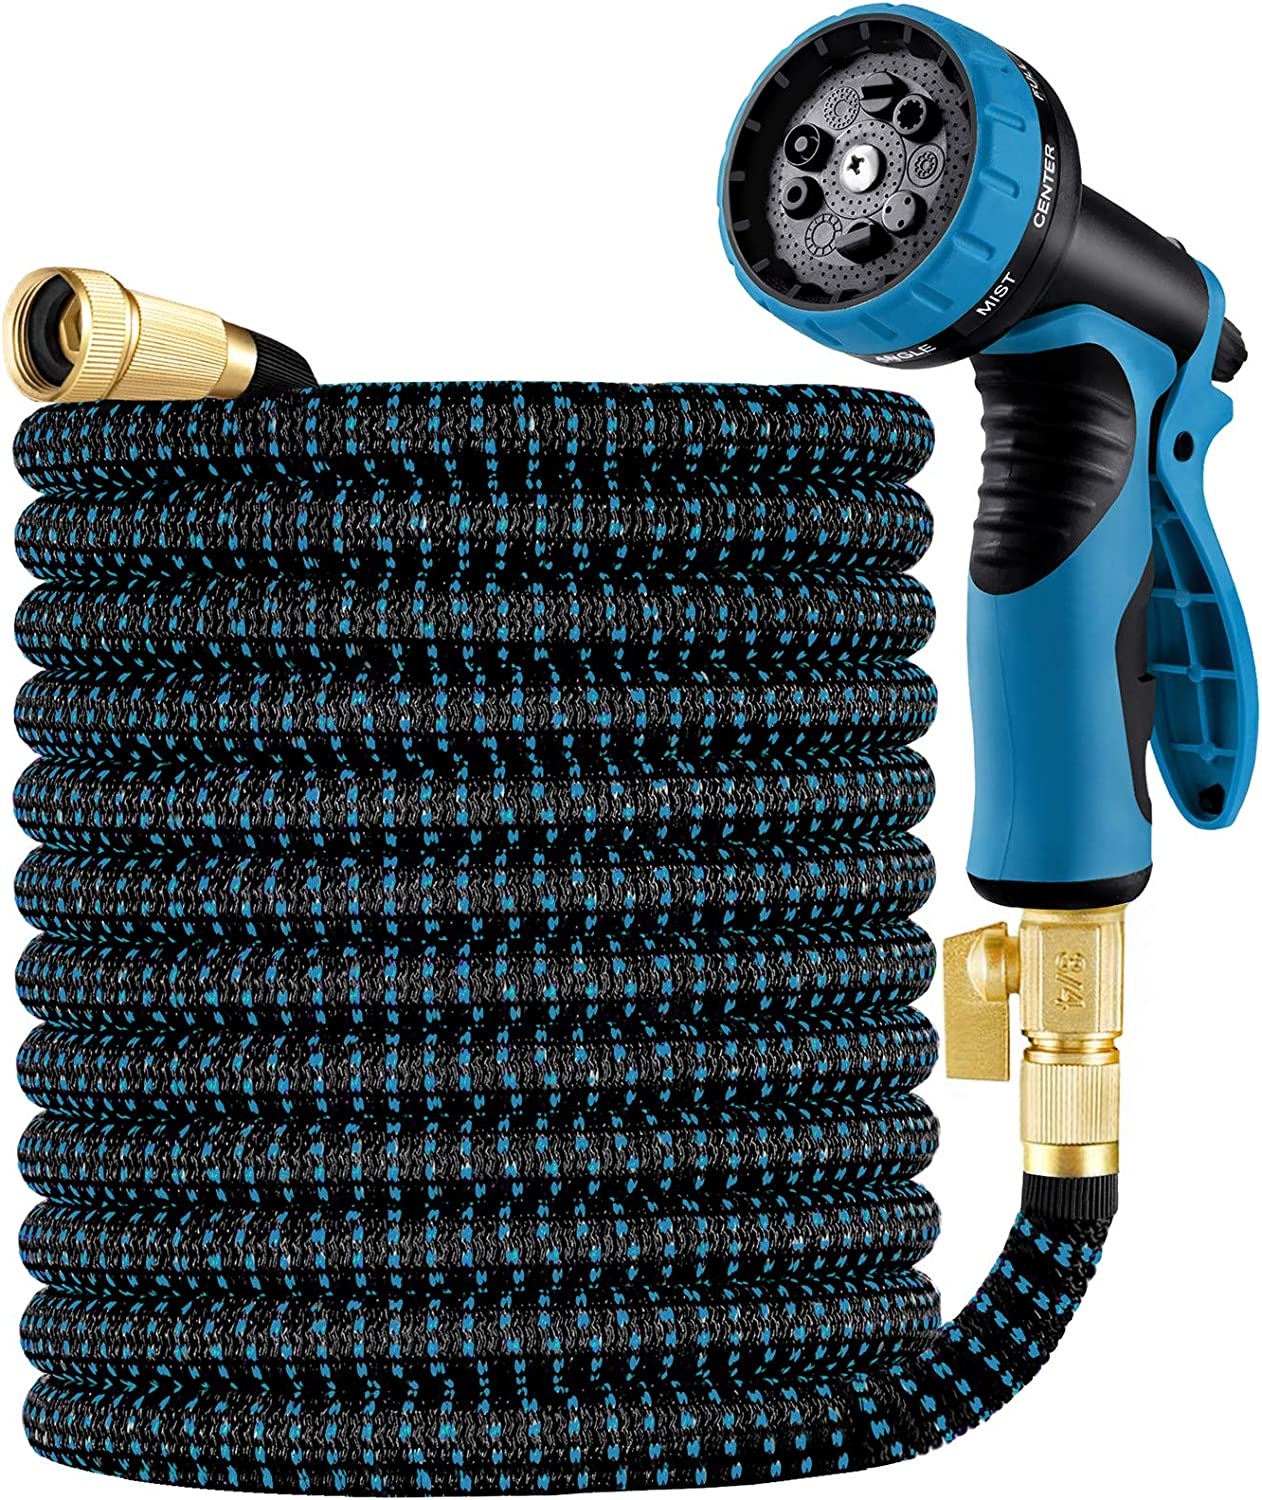 Oyydecor 25ft Garden Hose, Expandable Water Hose with 3/4